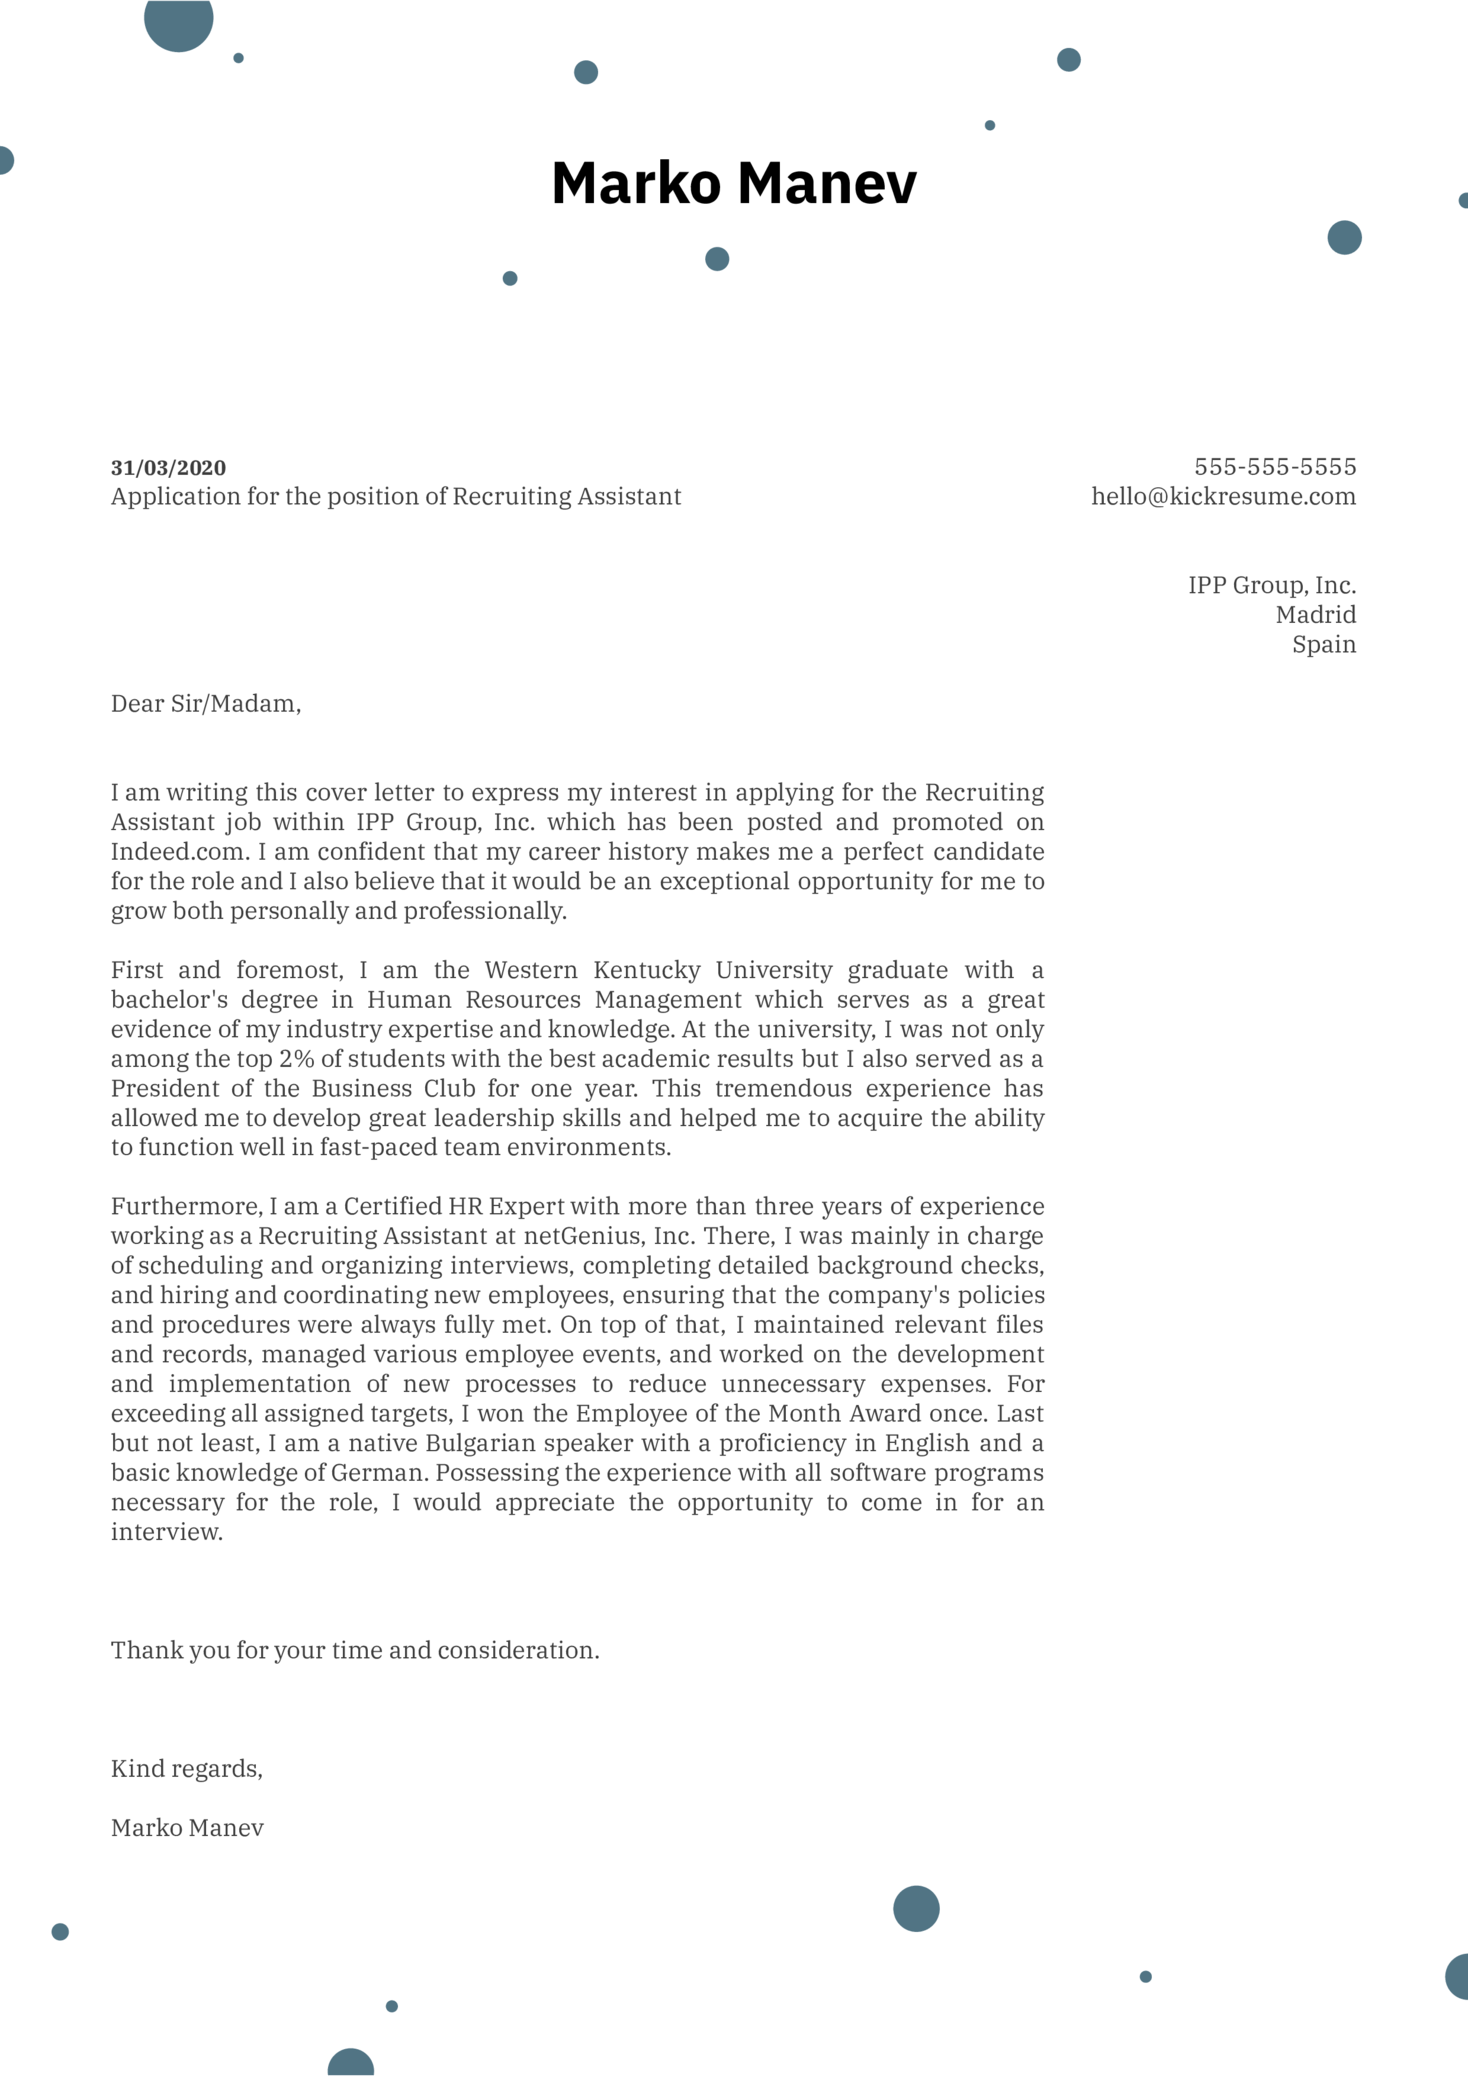 Recruiting Assistant Cover Letter Example